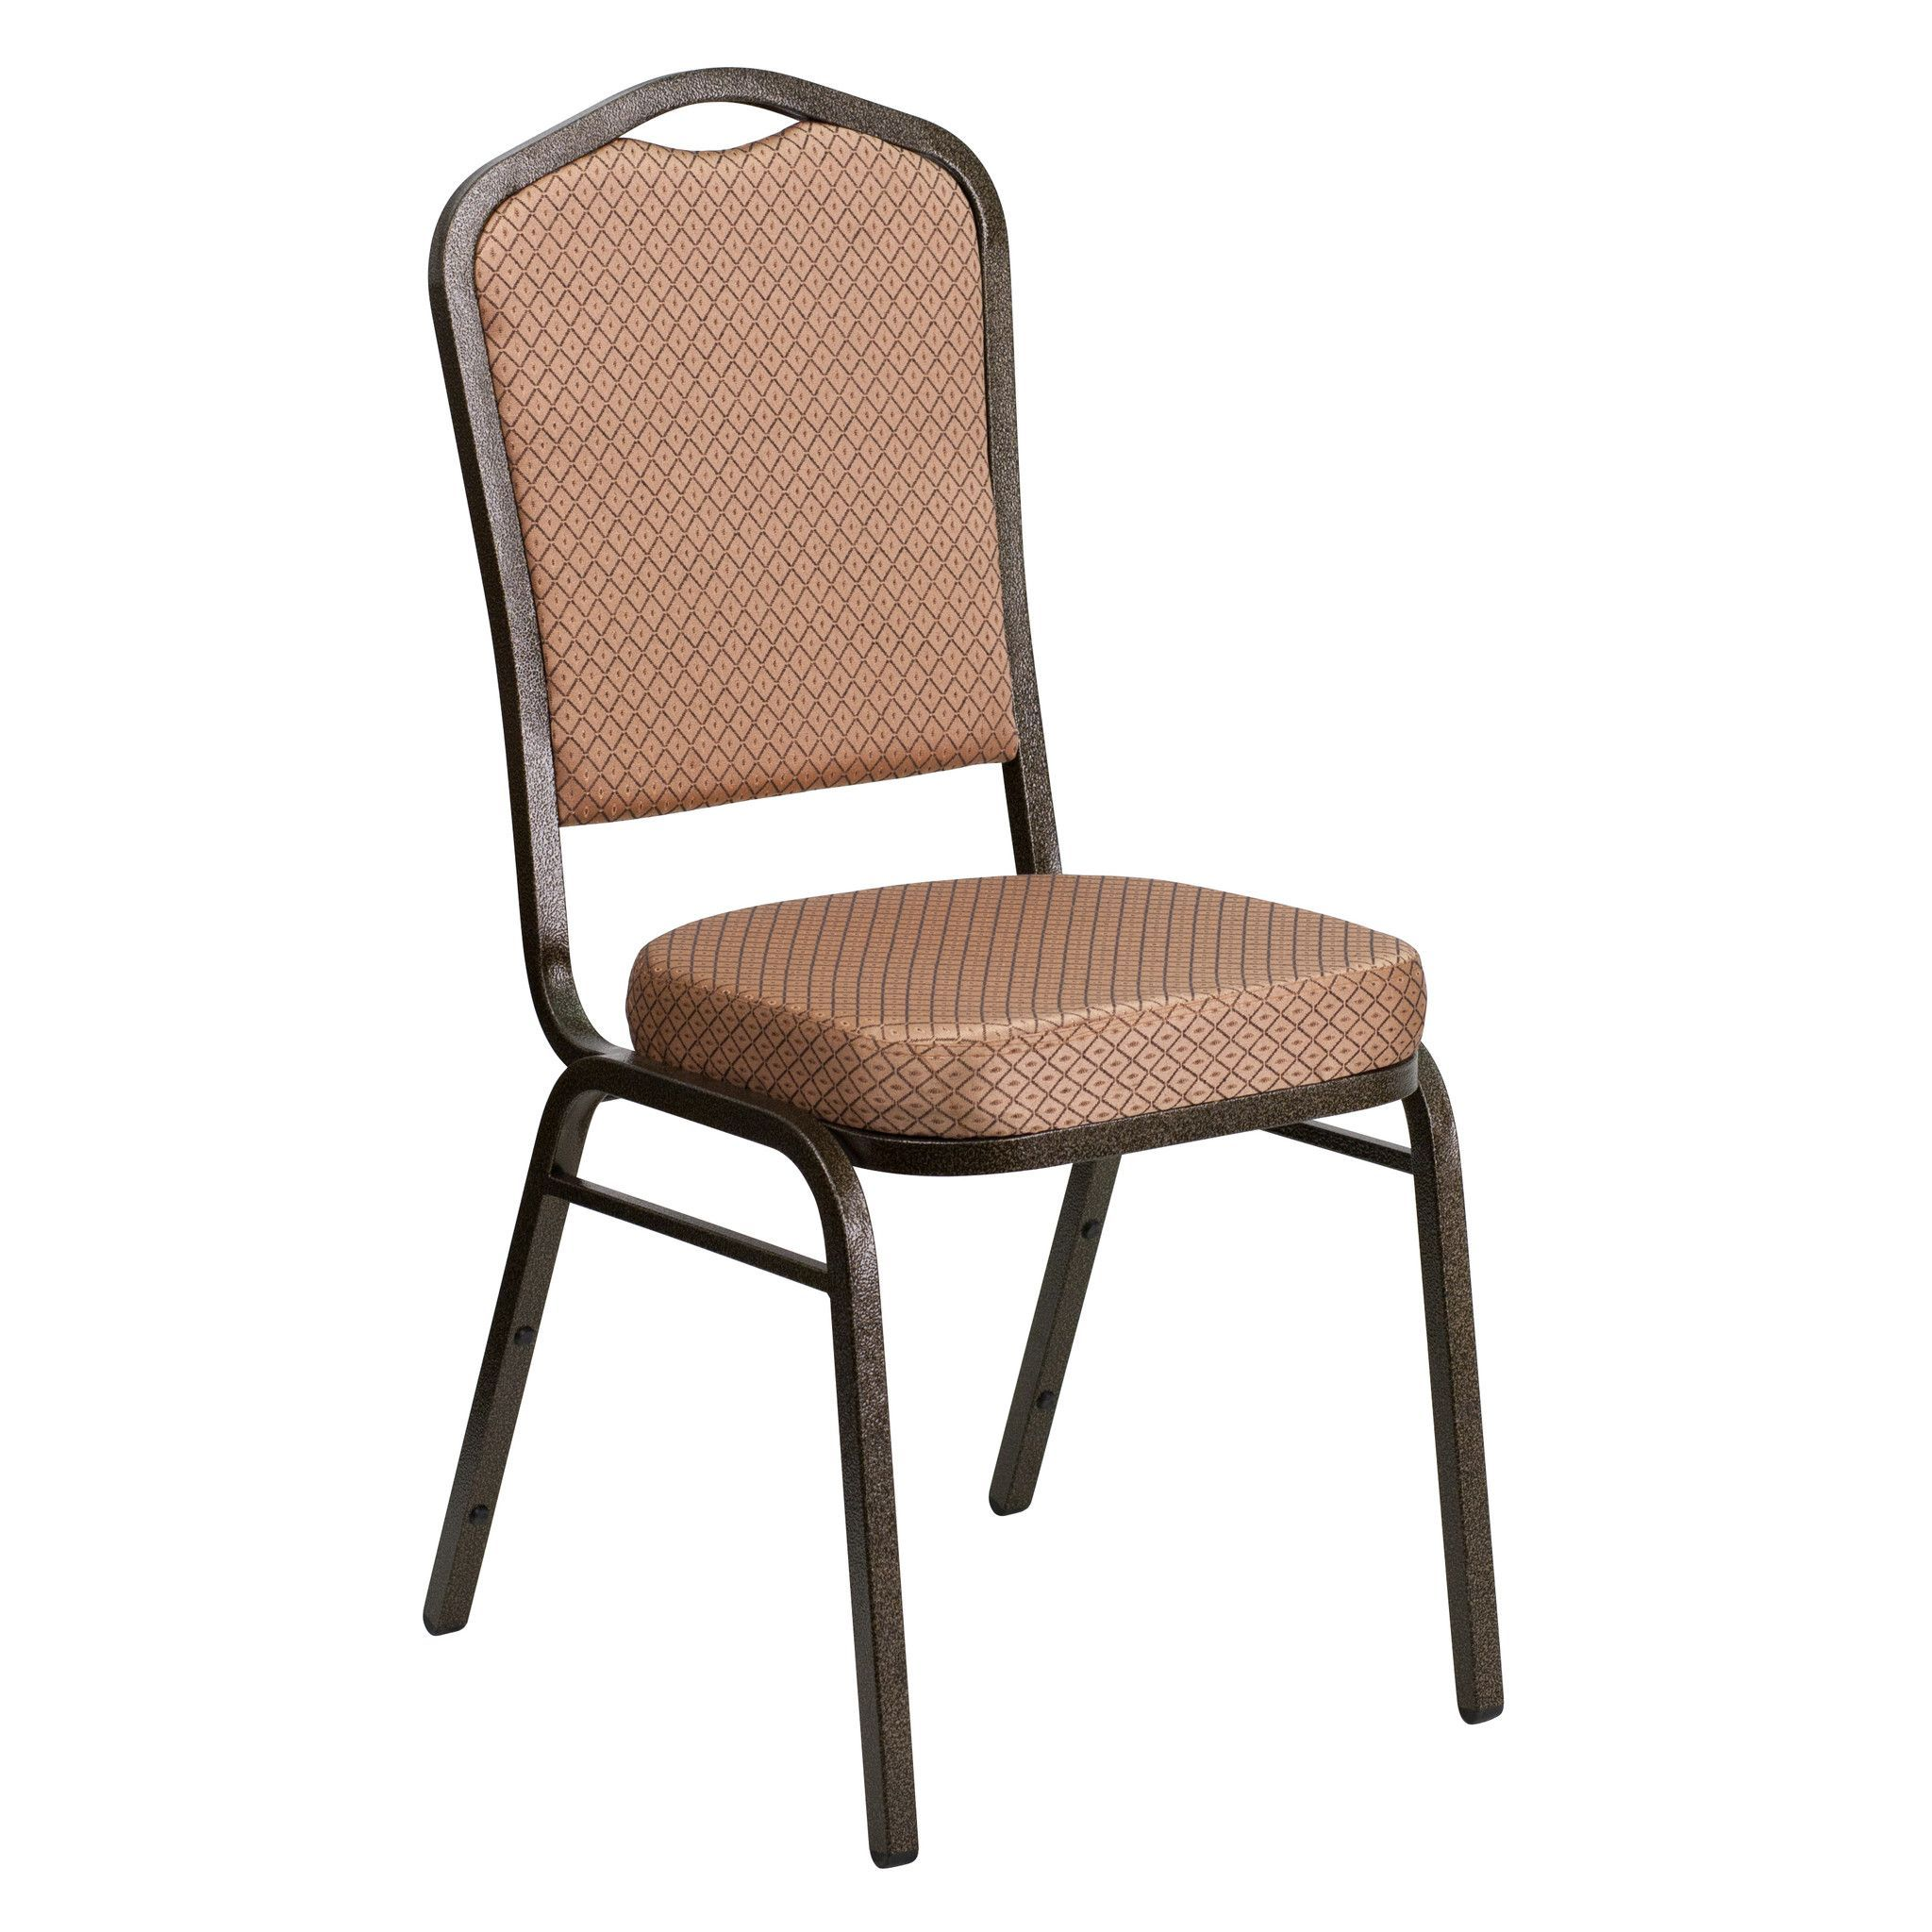 High Quality HERCULES Series Crown Back Stacking Banquet Chair With Patterned Fabric